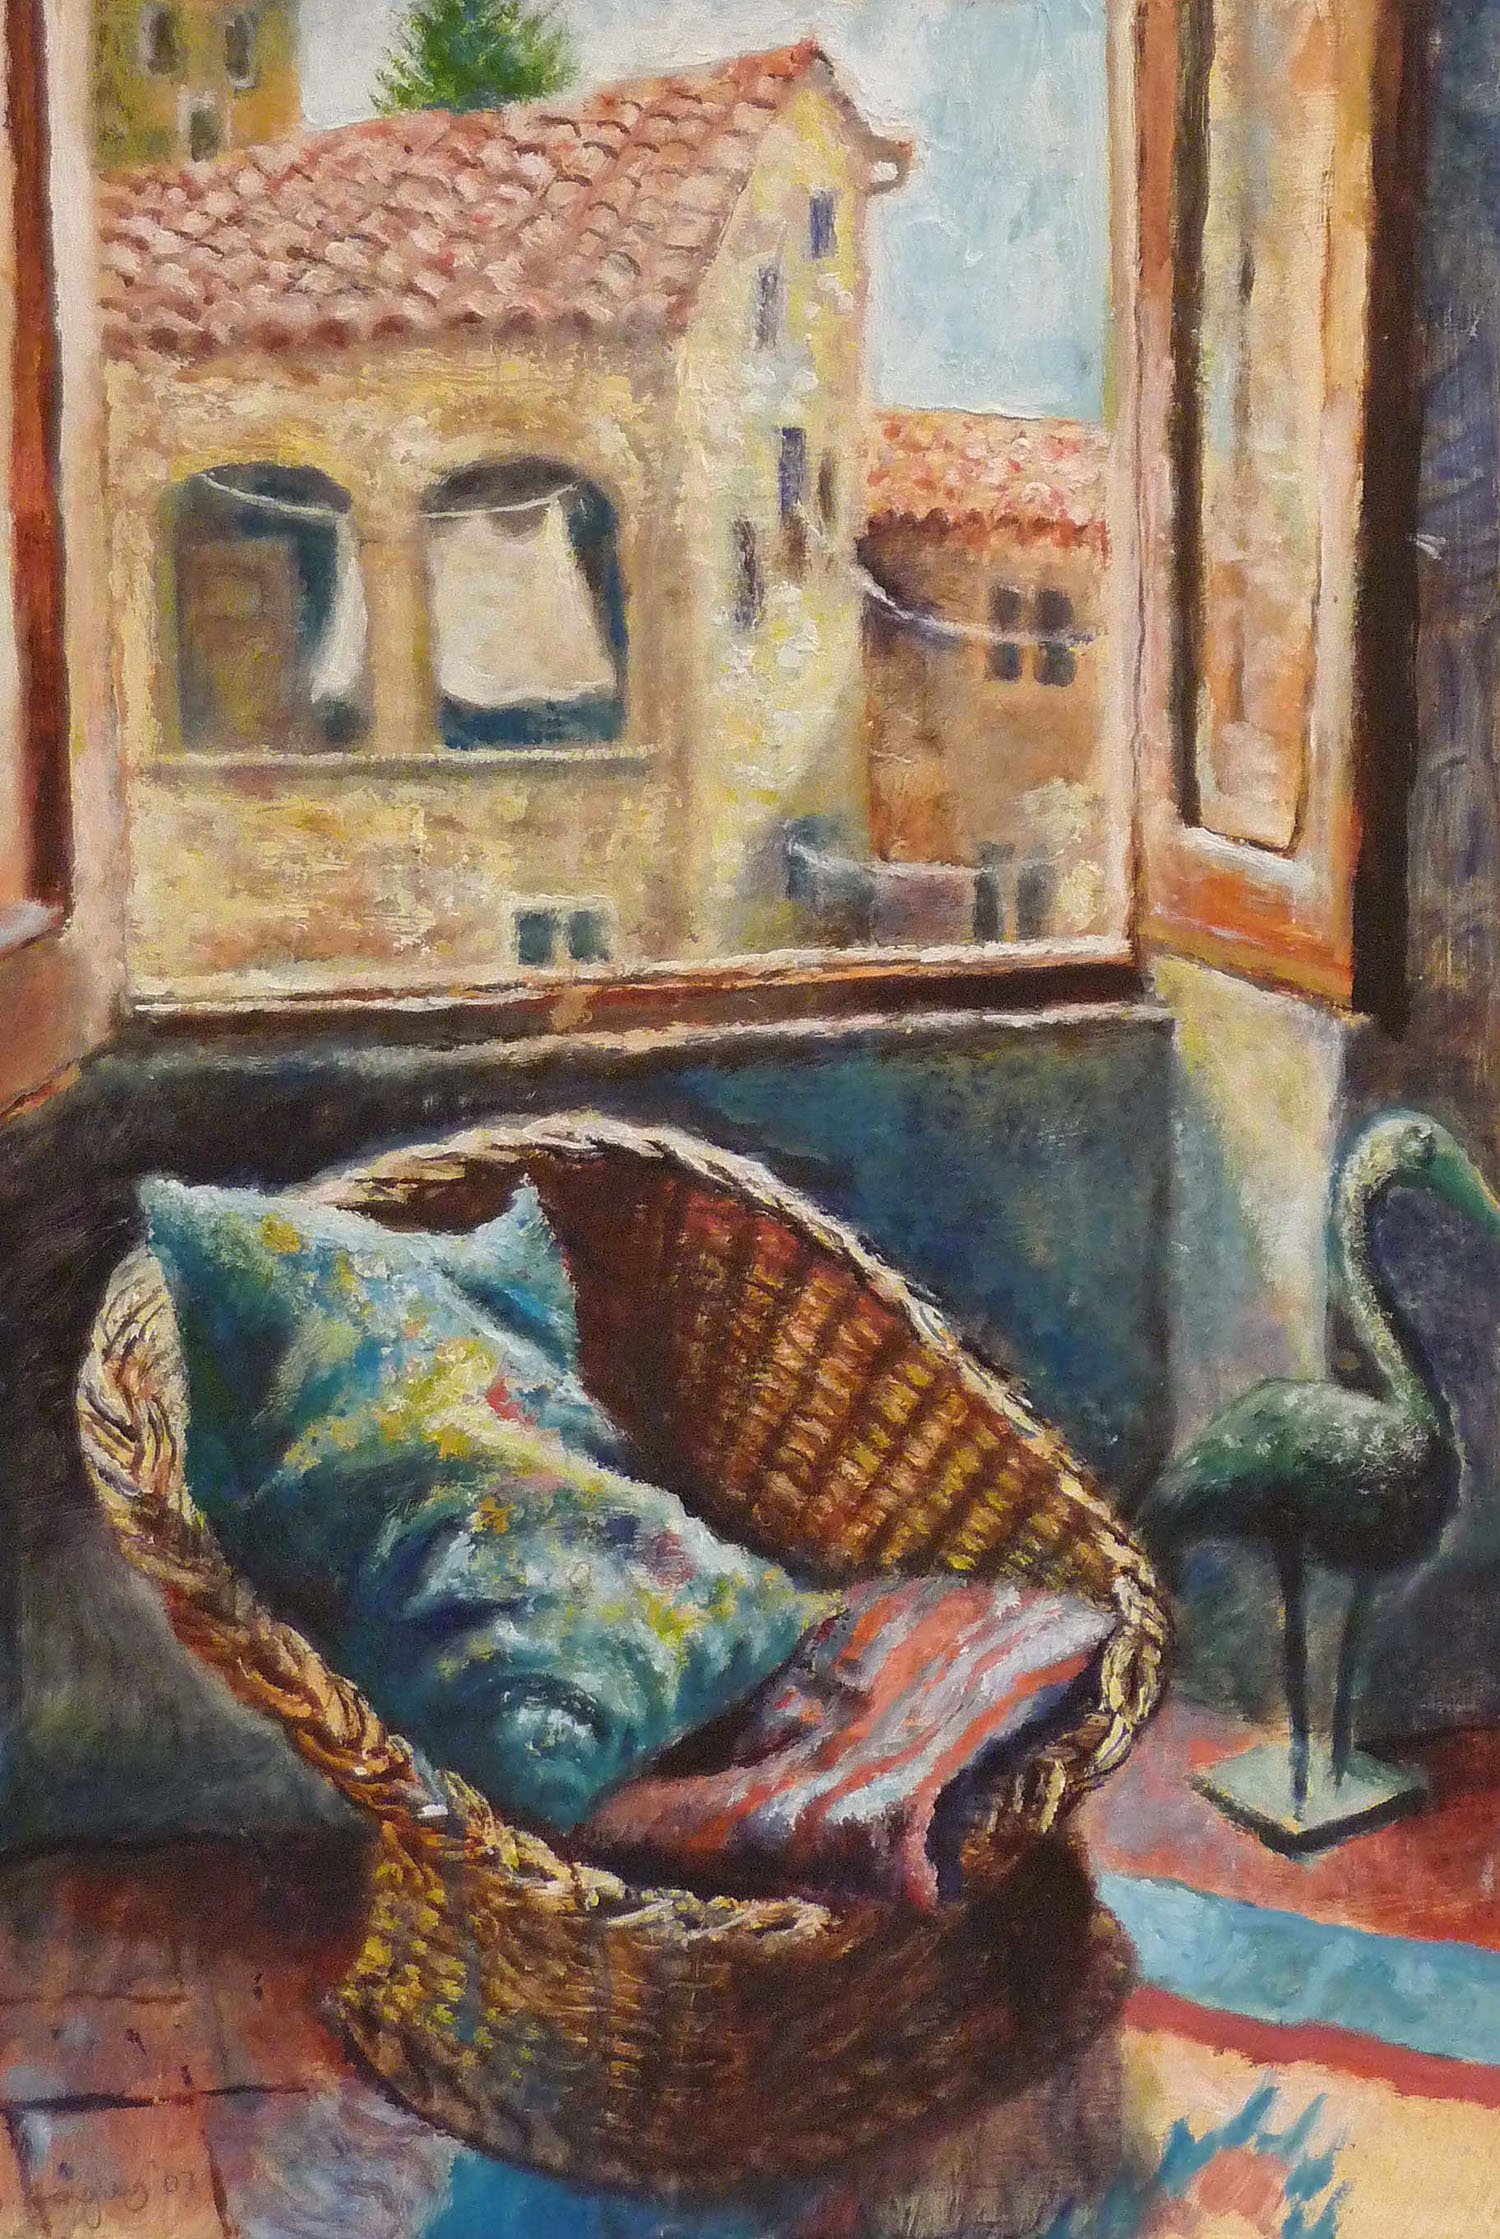 Sarah Longley_-_Wicker Chair and Heron_oil on board_45 x 31cm.jpg